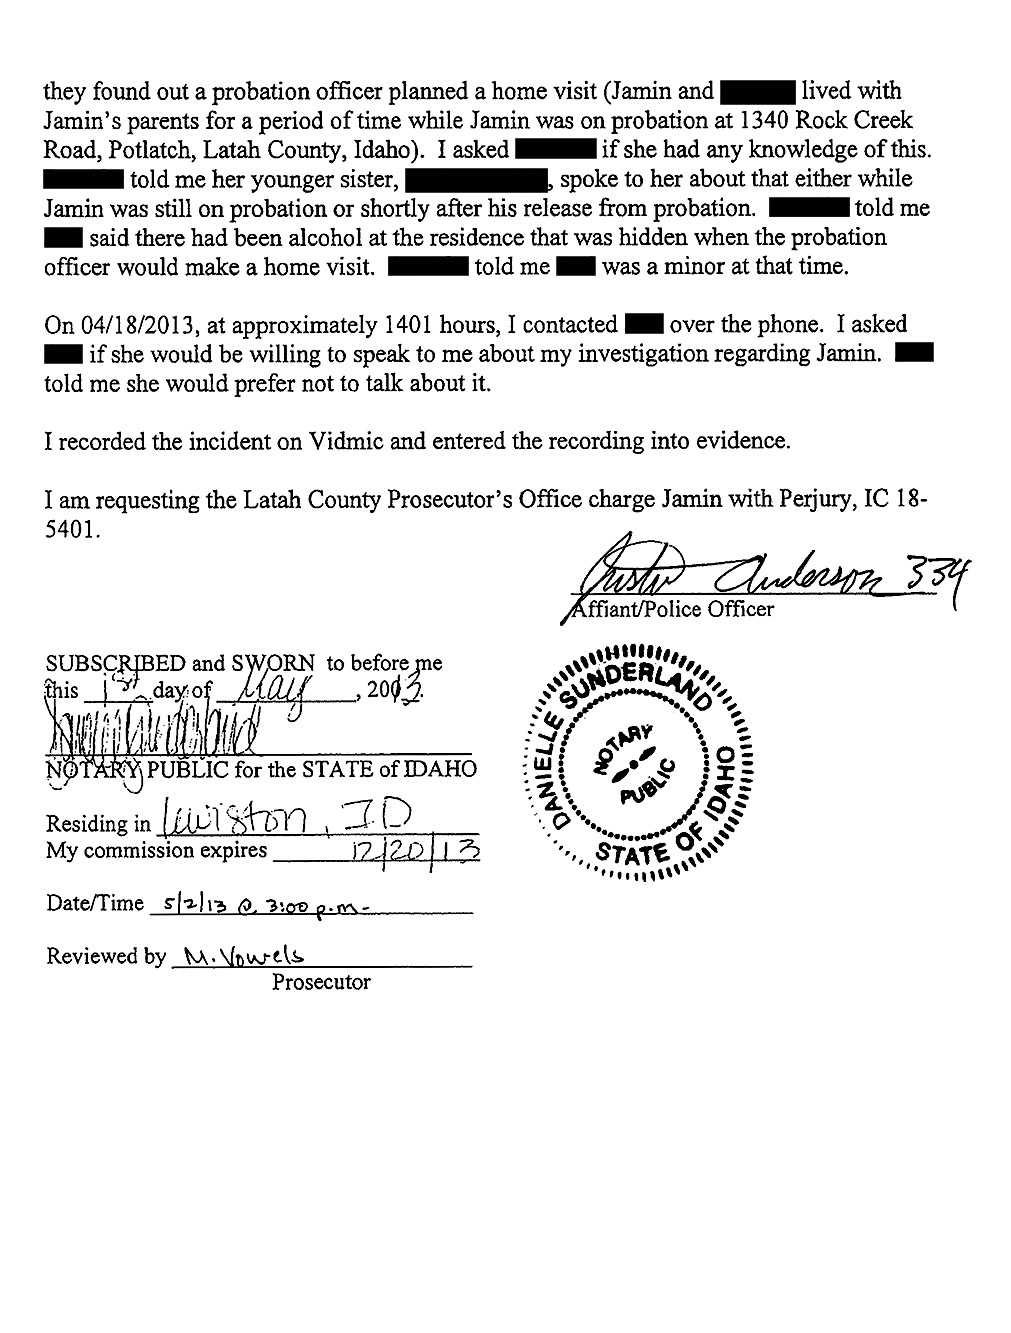 Affidavit of Latah County Sheriff's Detective Justin Anderson page 6